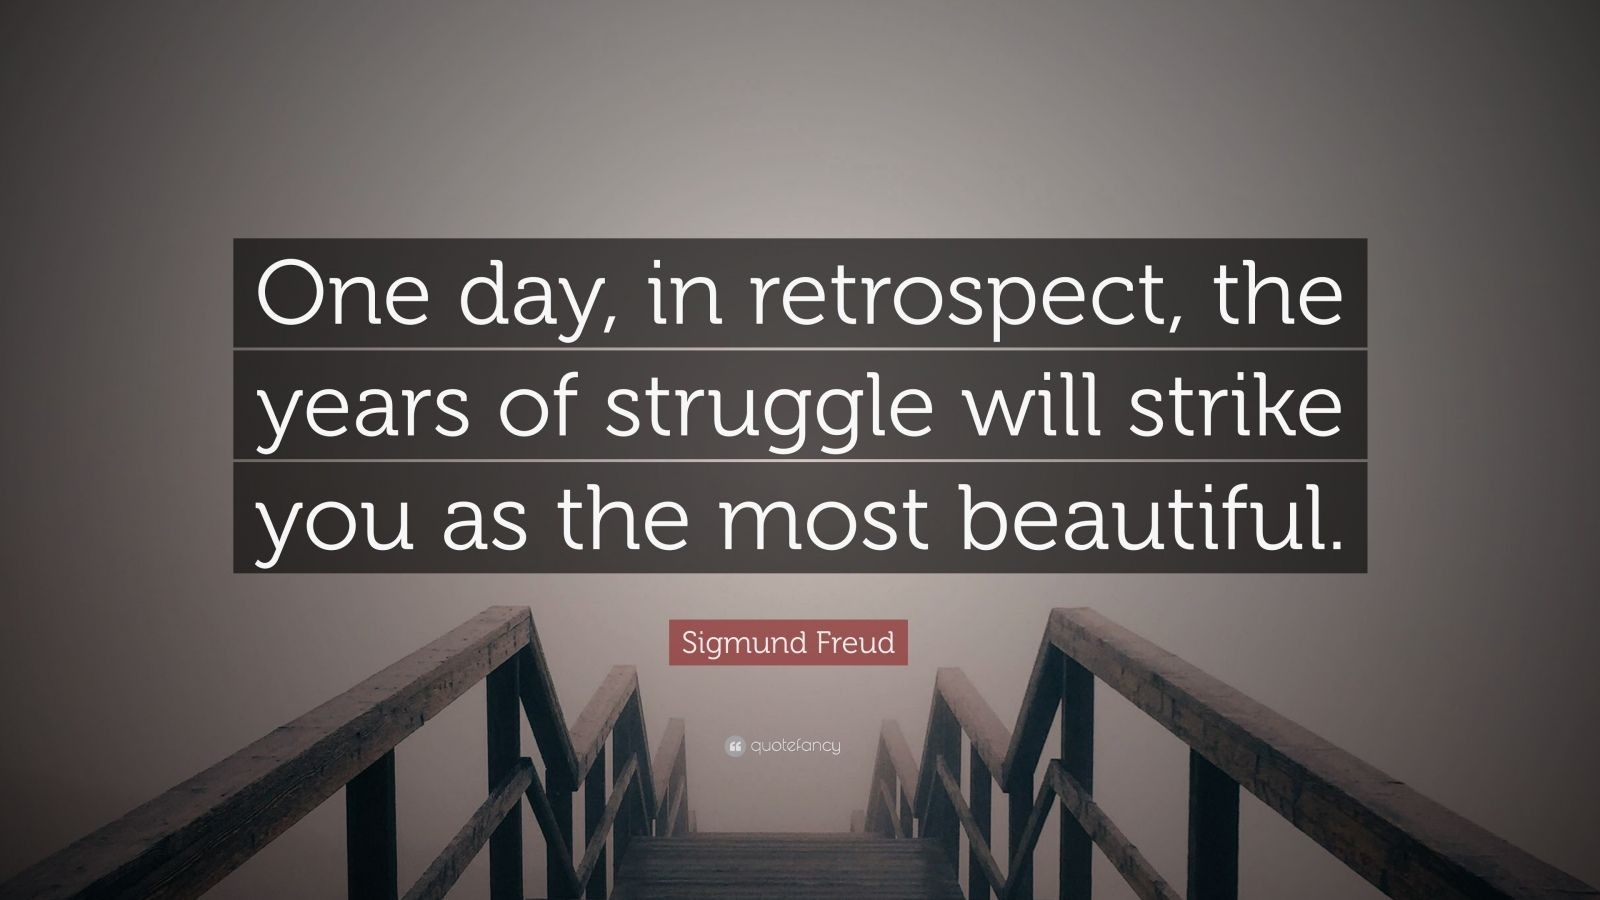 Wallpapers With Quotes On Loneliness Sigmund Freud Quote One Day In Retrospect The Years Of